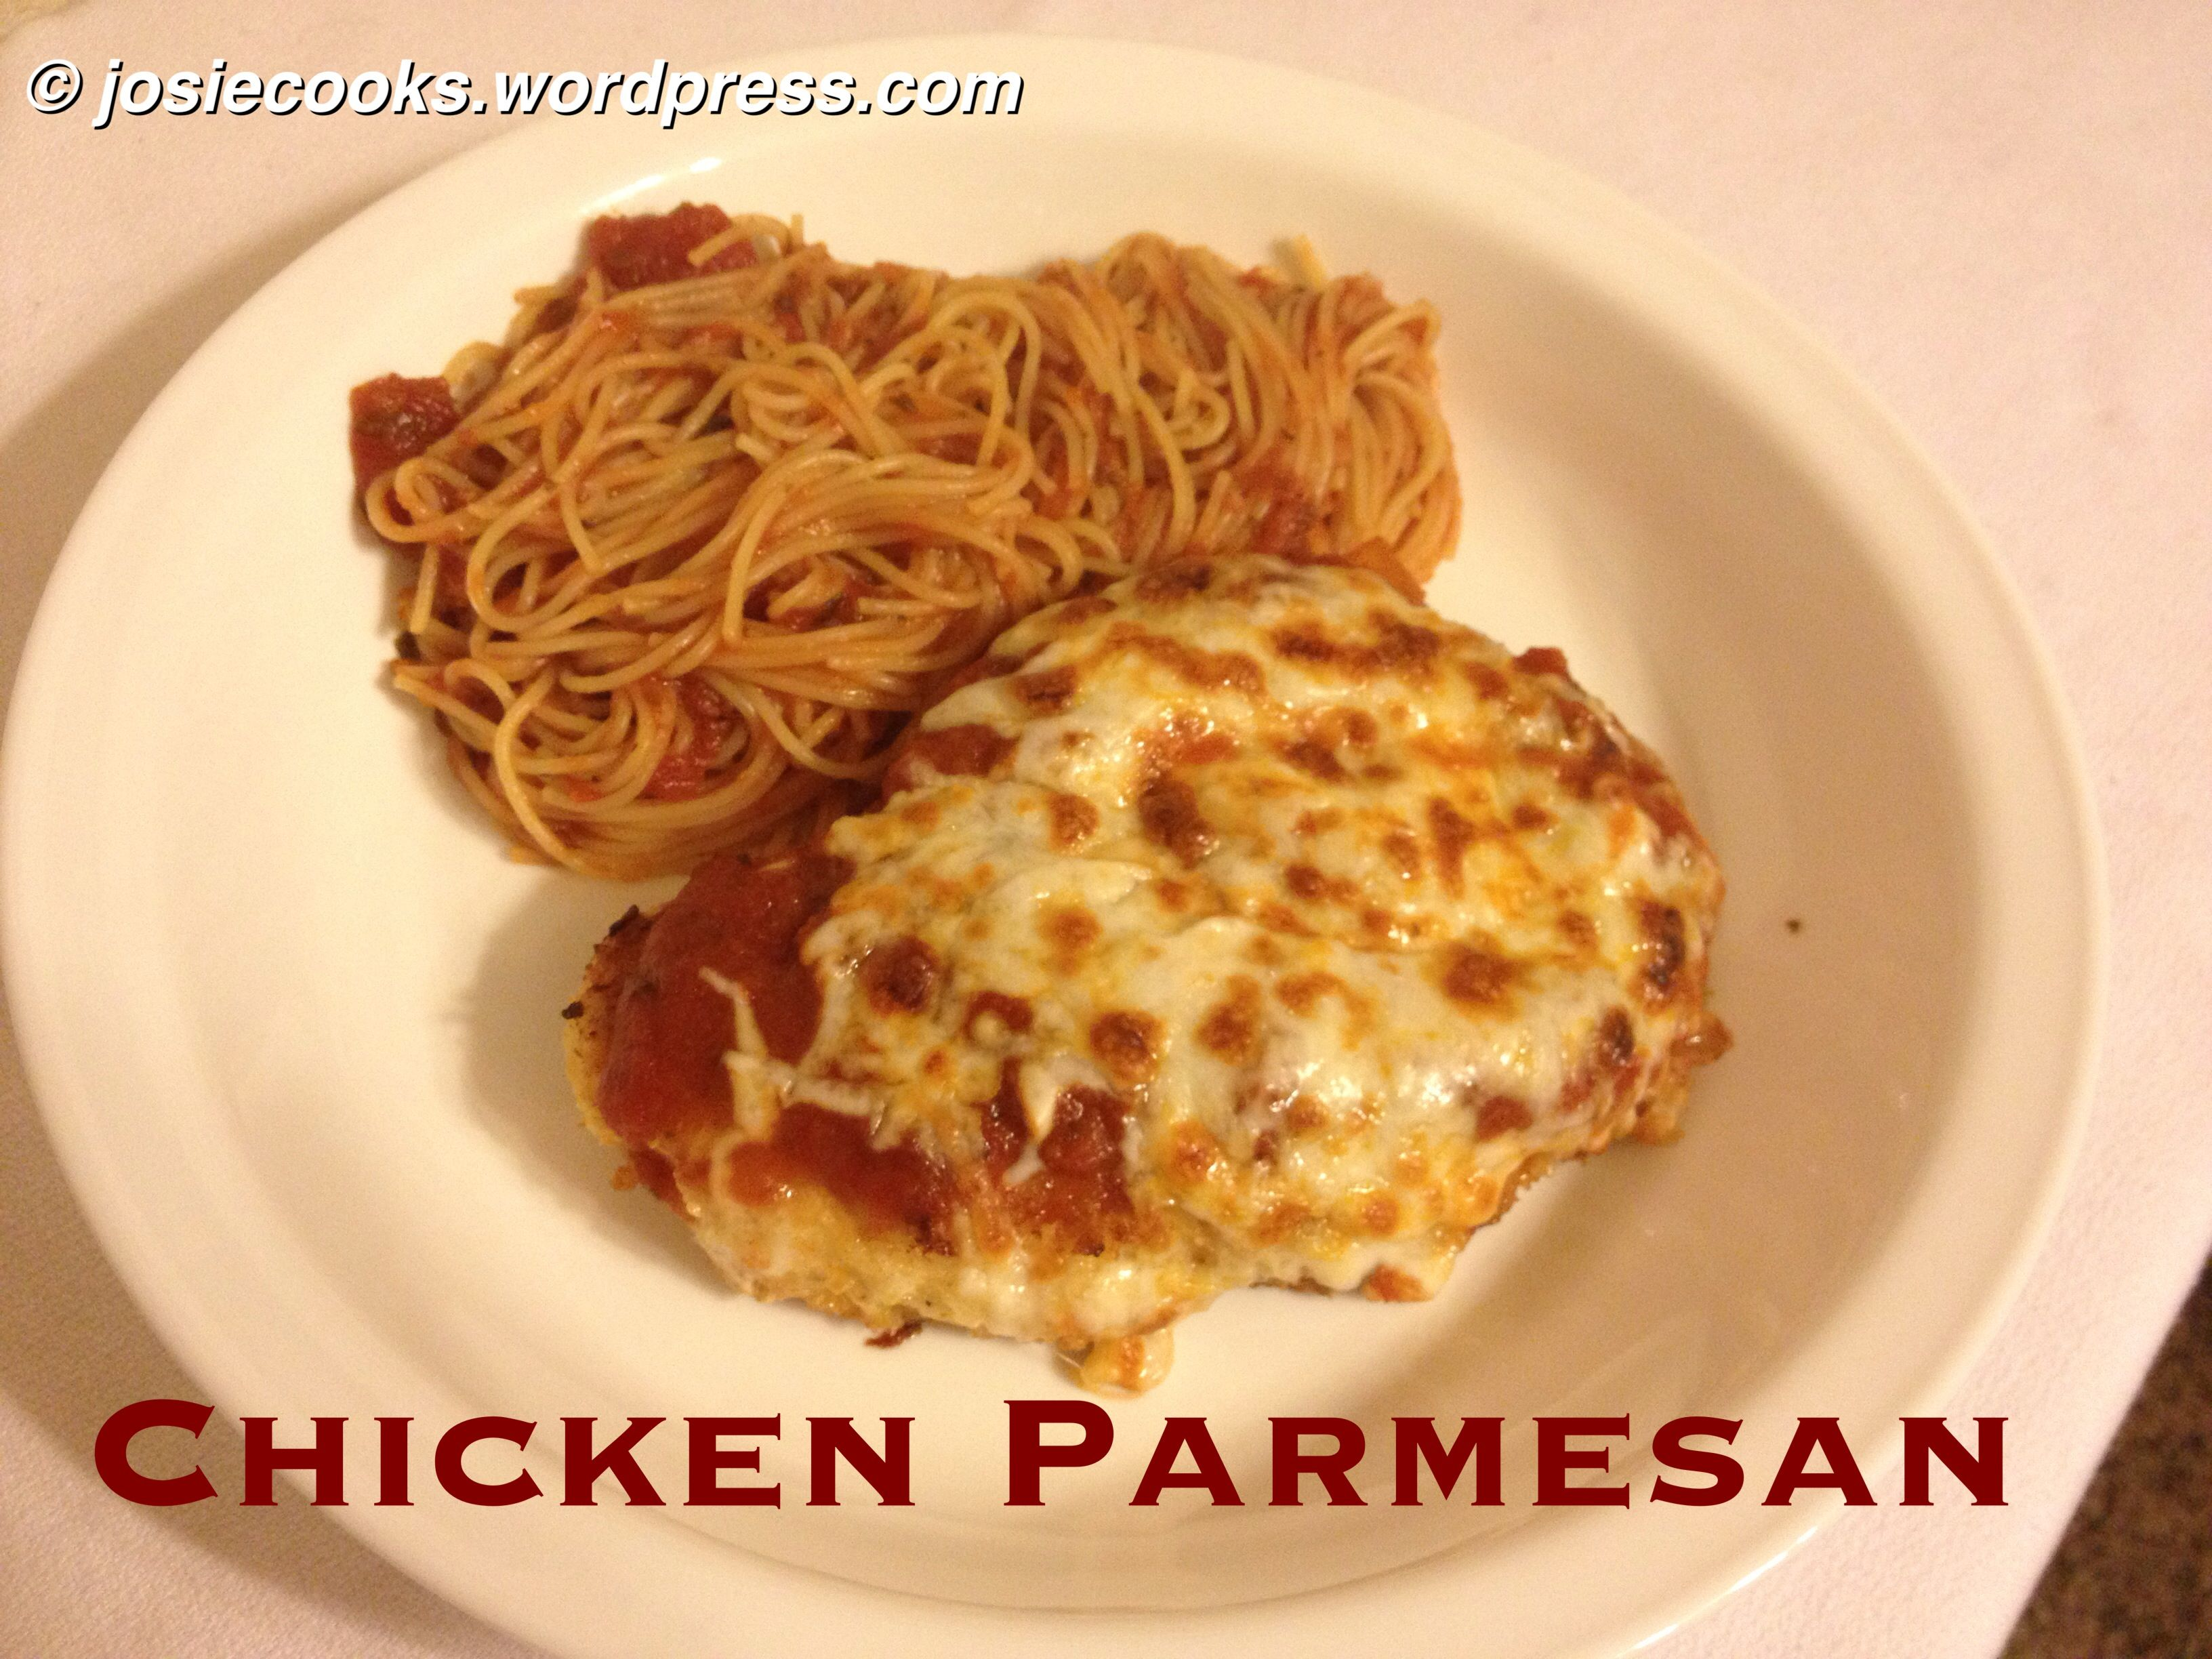 Chicken Parmesan Chicken parmesan, Poultry recipes, Food